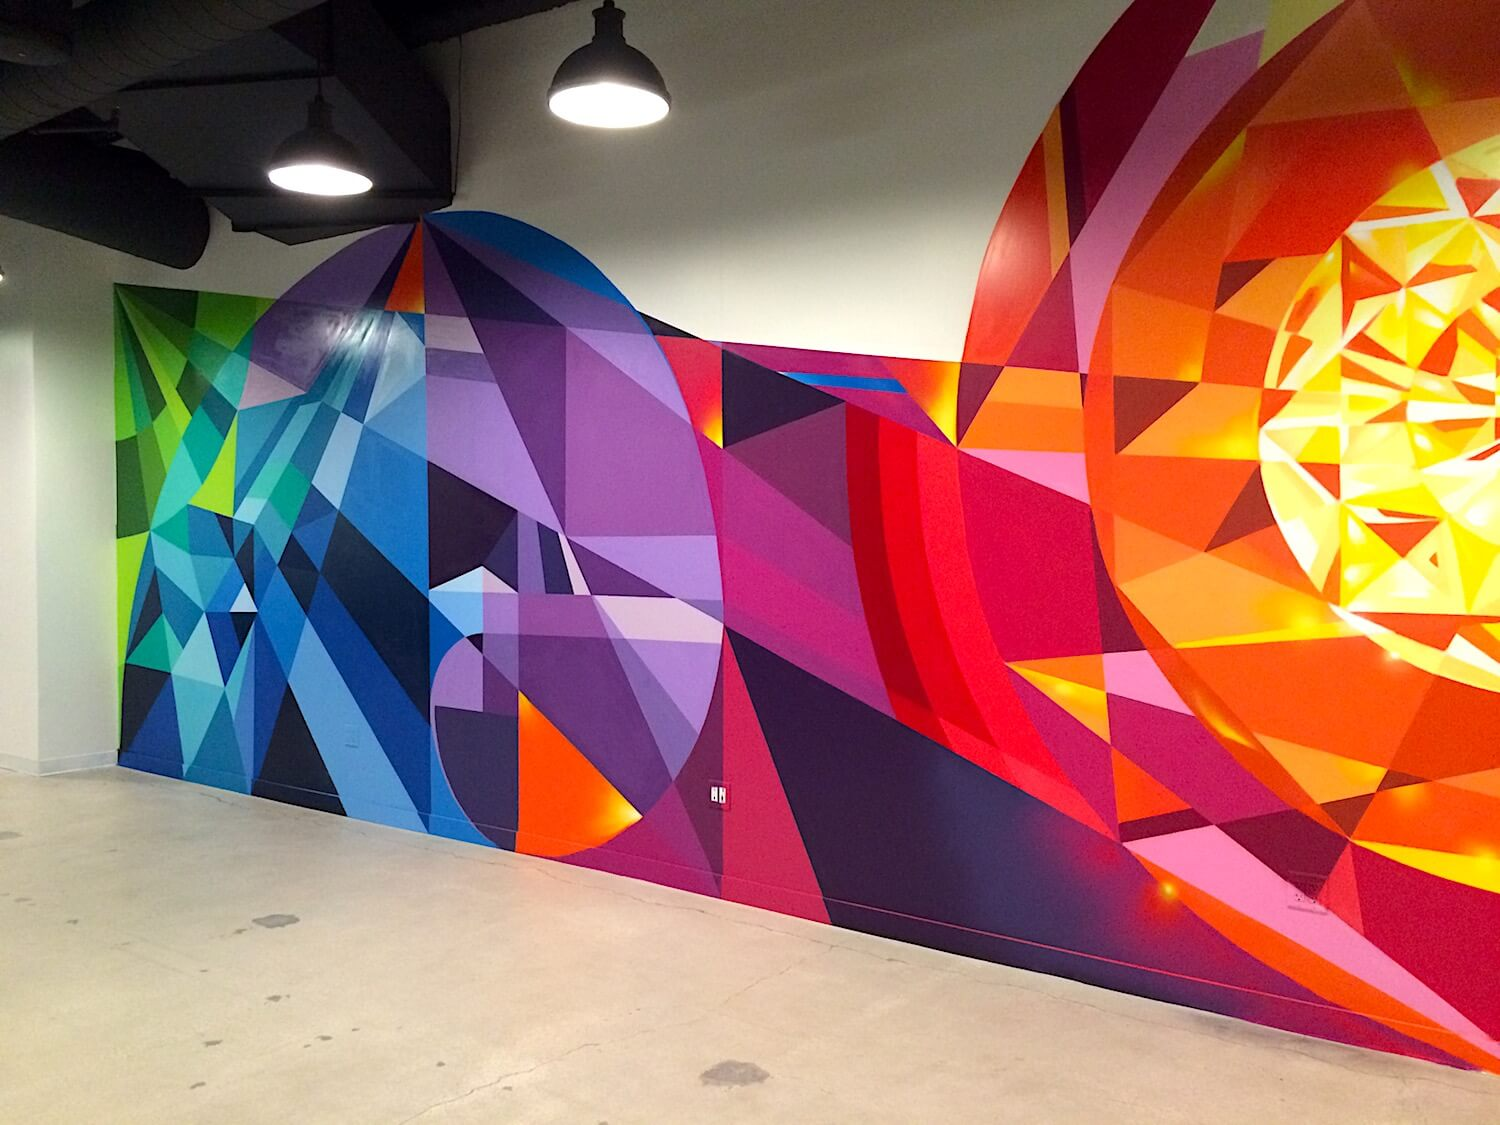 Commissioned Interior Mural 3 for EndemolShine | Los Angeles USA, 2016